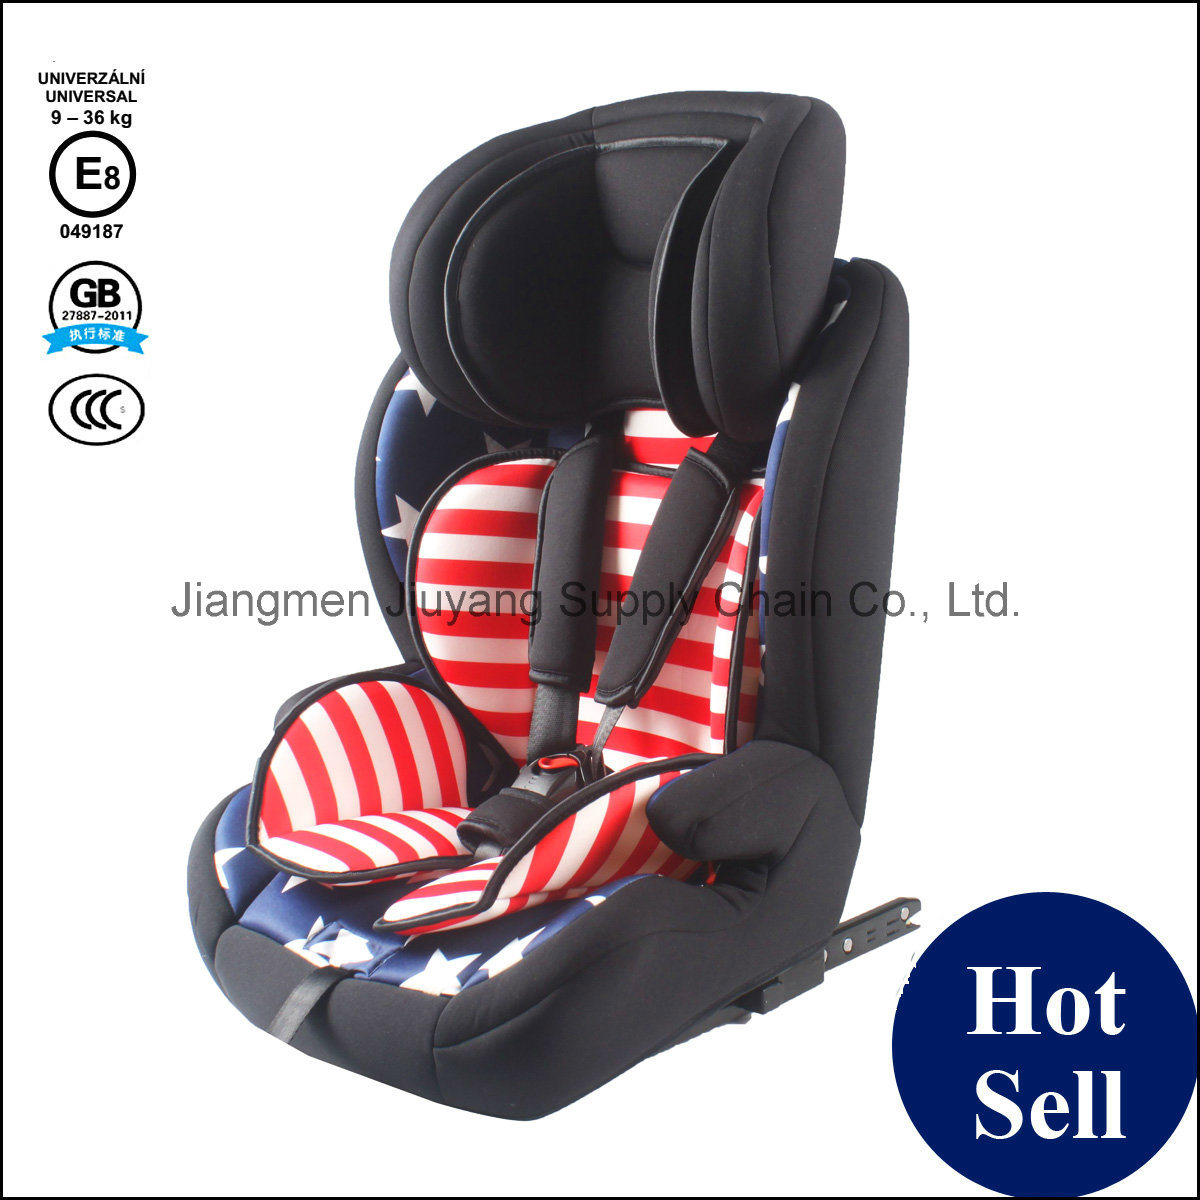 Best Sell Product - ECE Baby Car Safety Seat for 4-12 Years Child